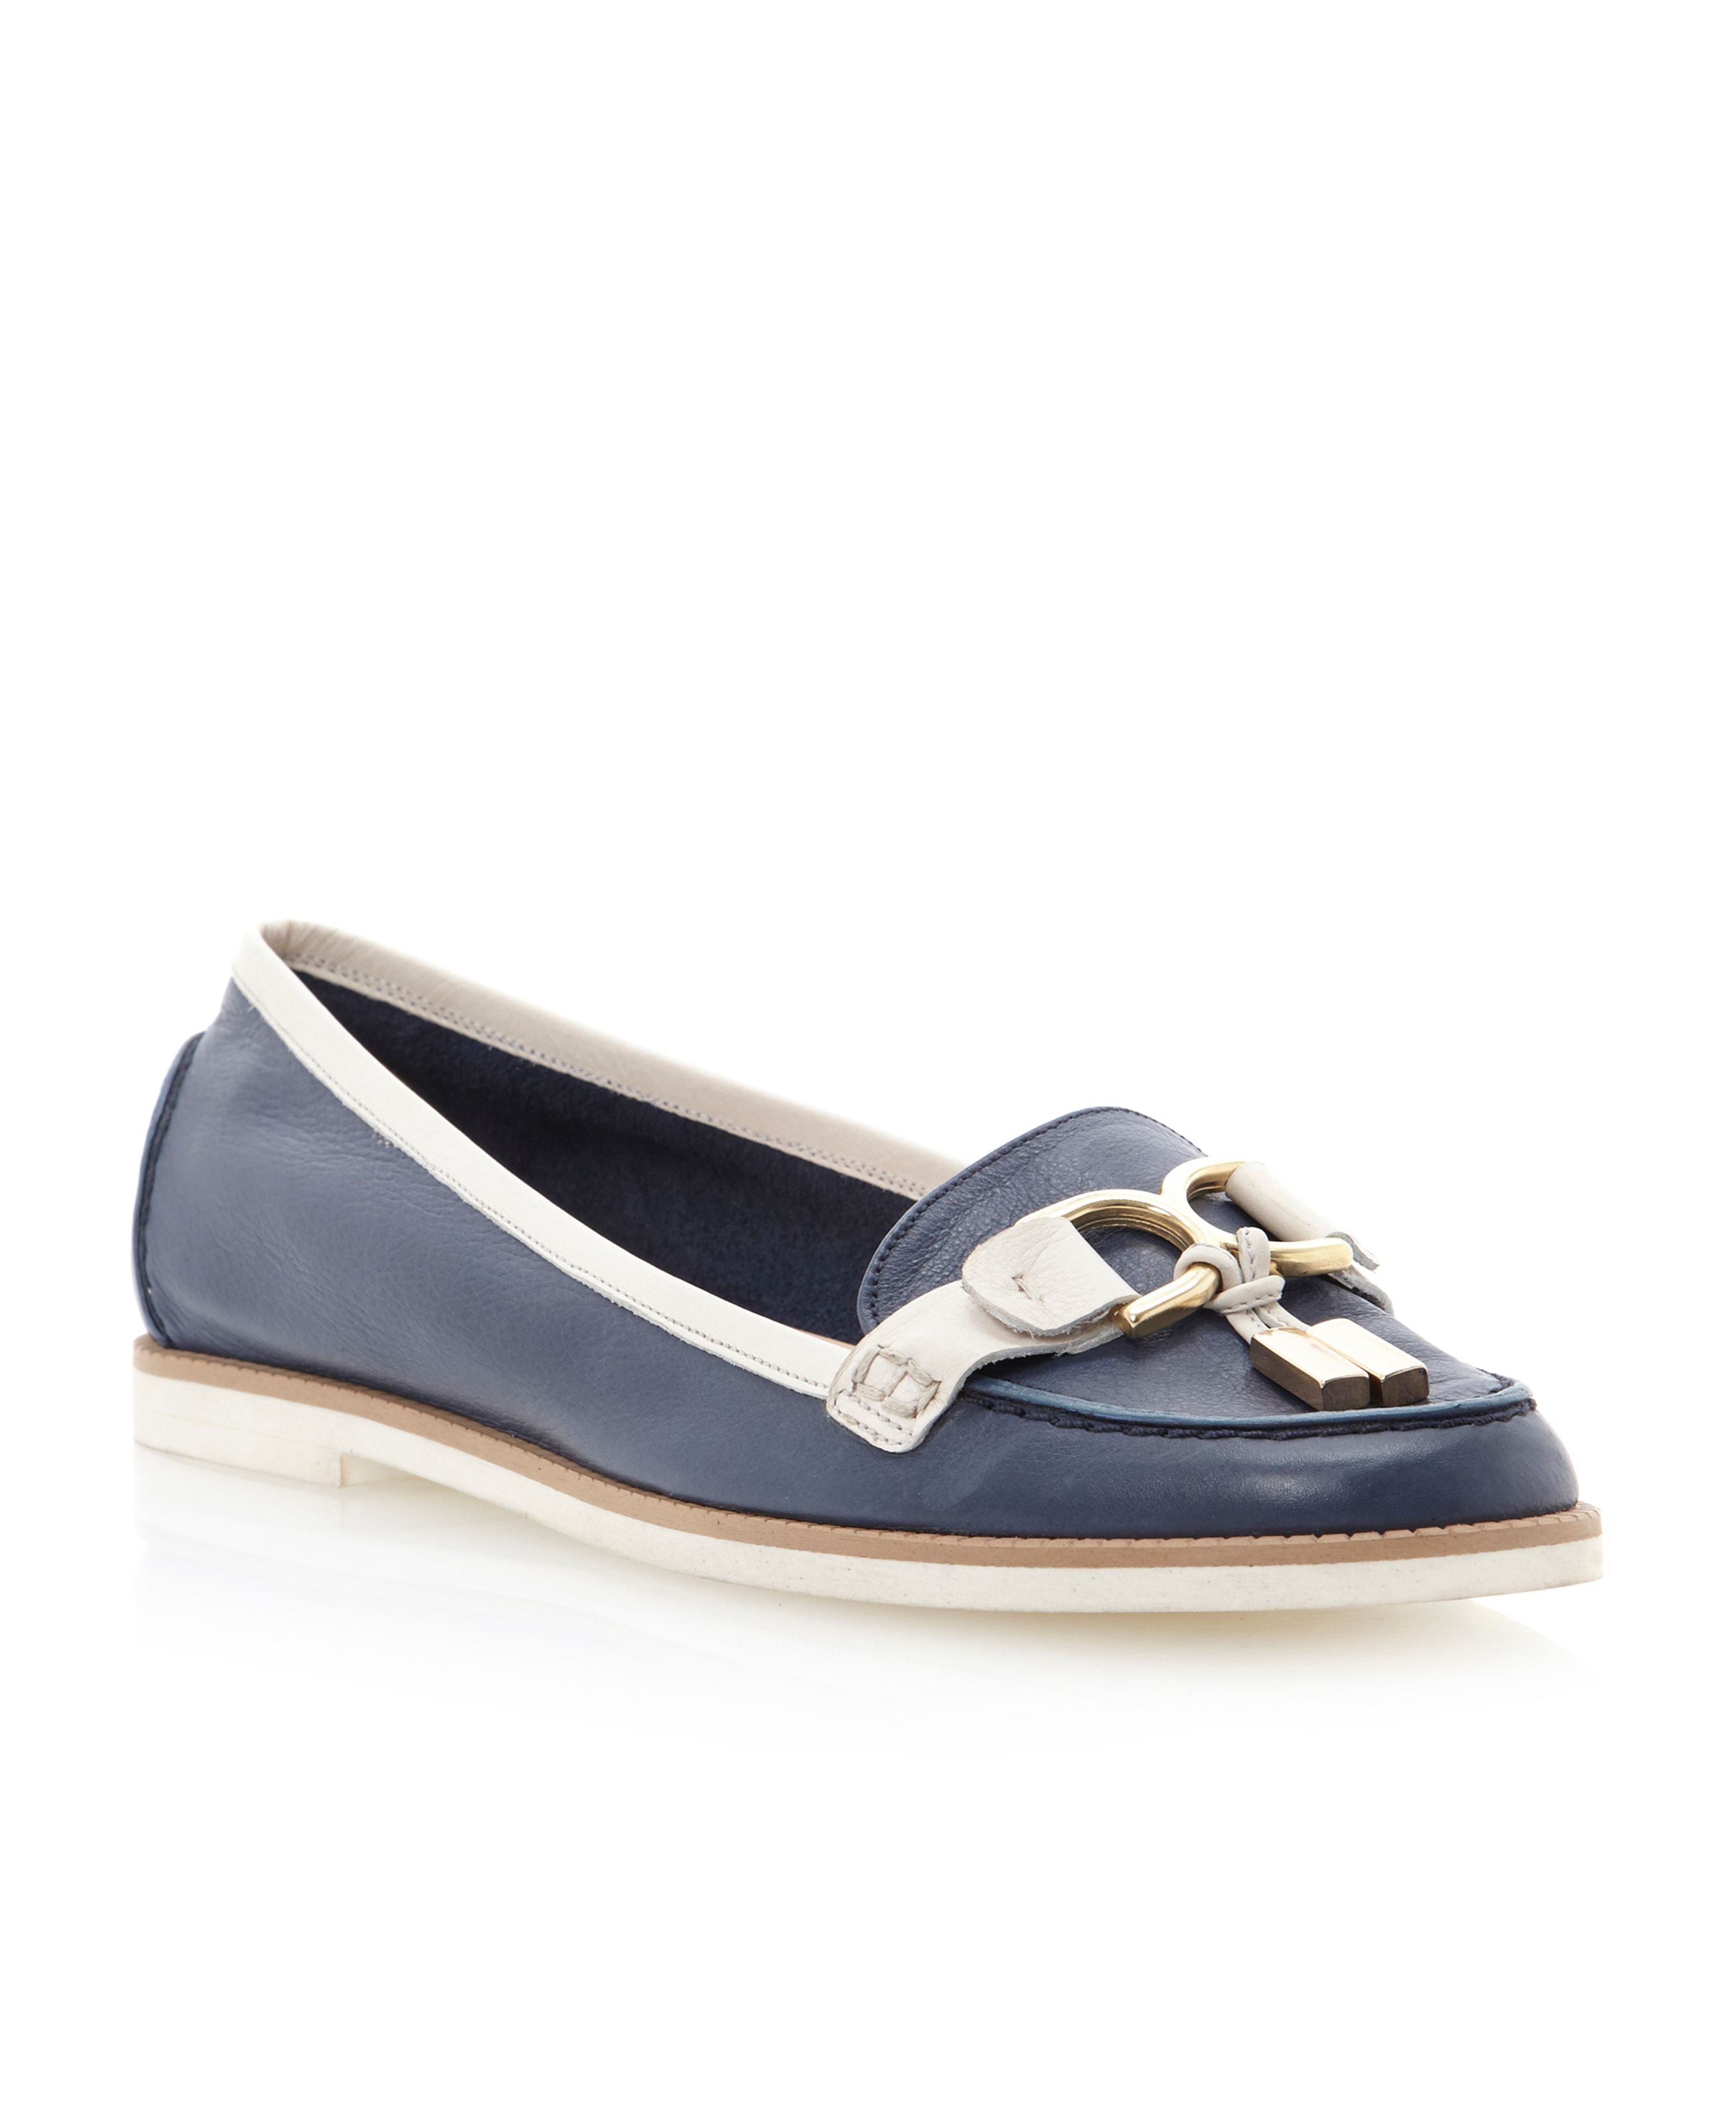 Luba metal trim eva loafer shoes